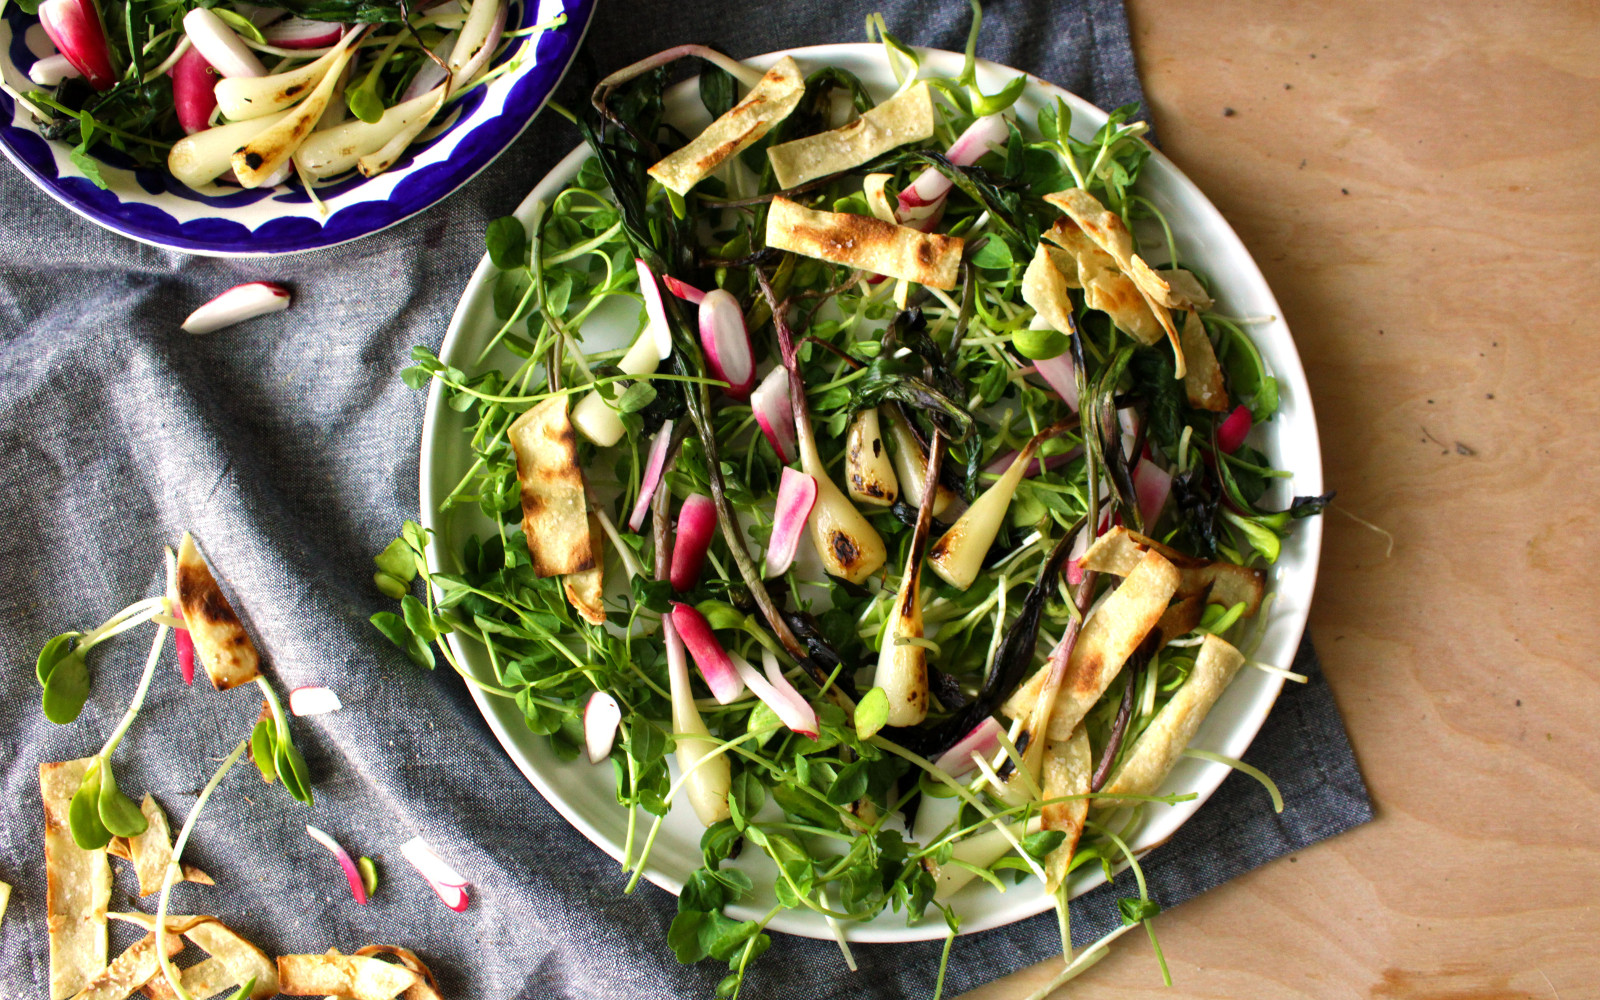 Fried Ramps With French Breakfast Radishes and Spring Shoots